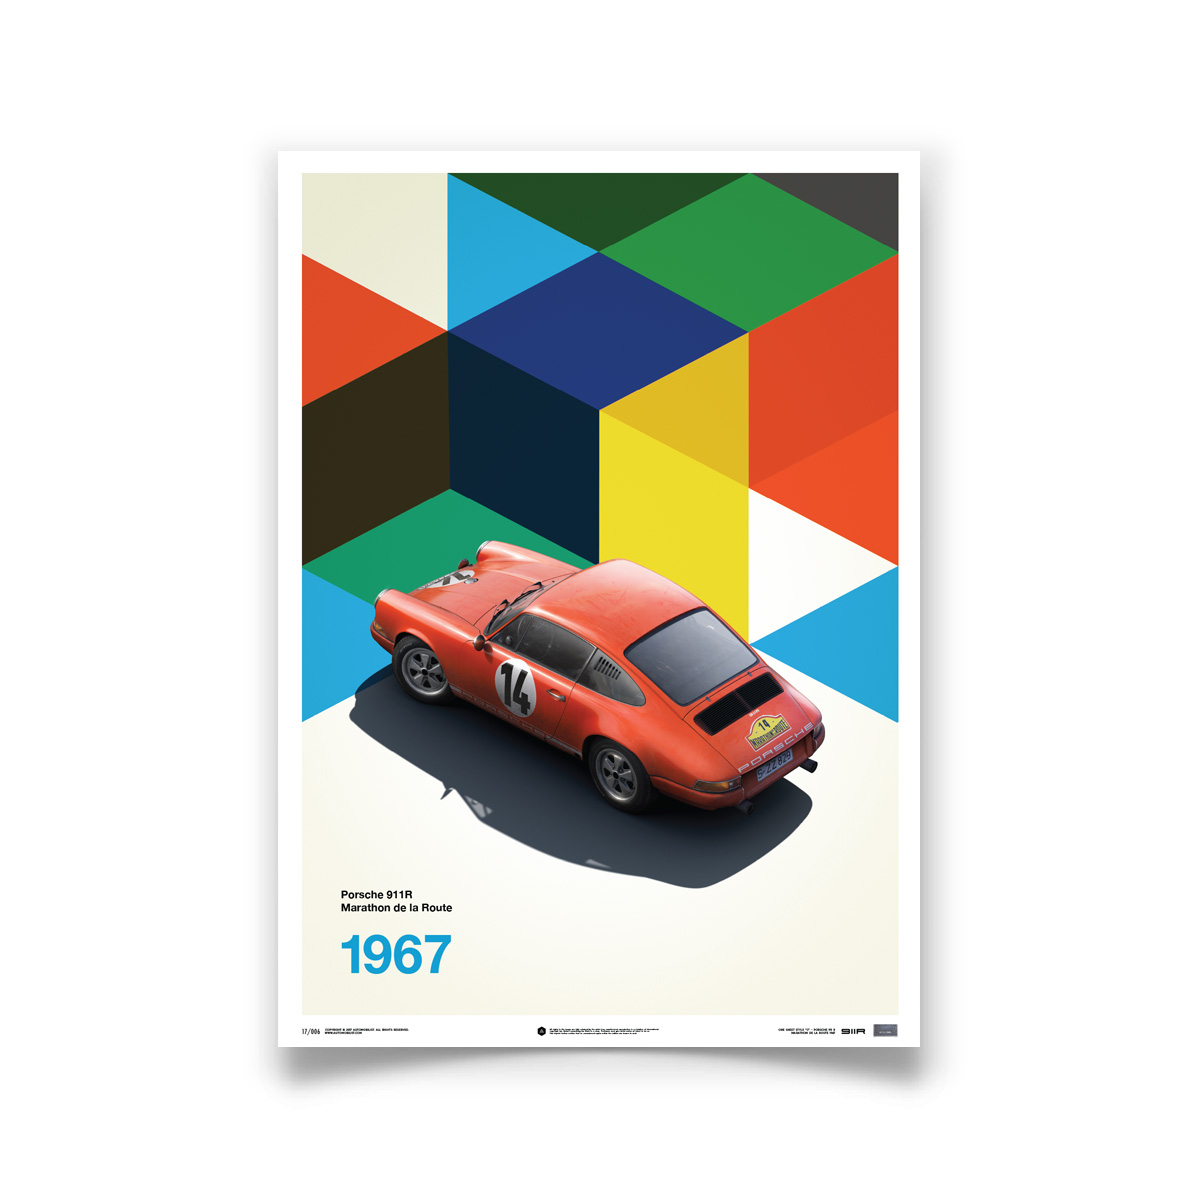 Product image for Porsche 911R Red Marathon de la Route 1967: Limited Poster